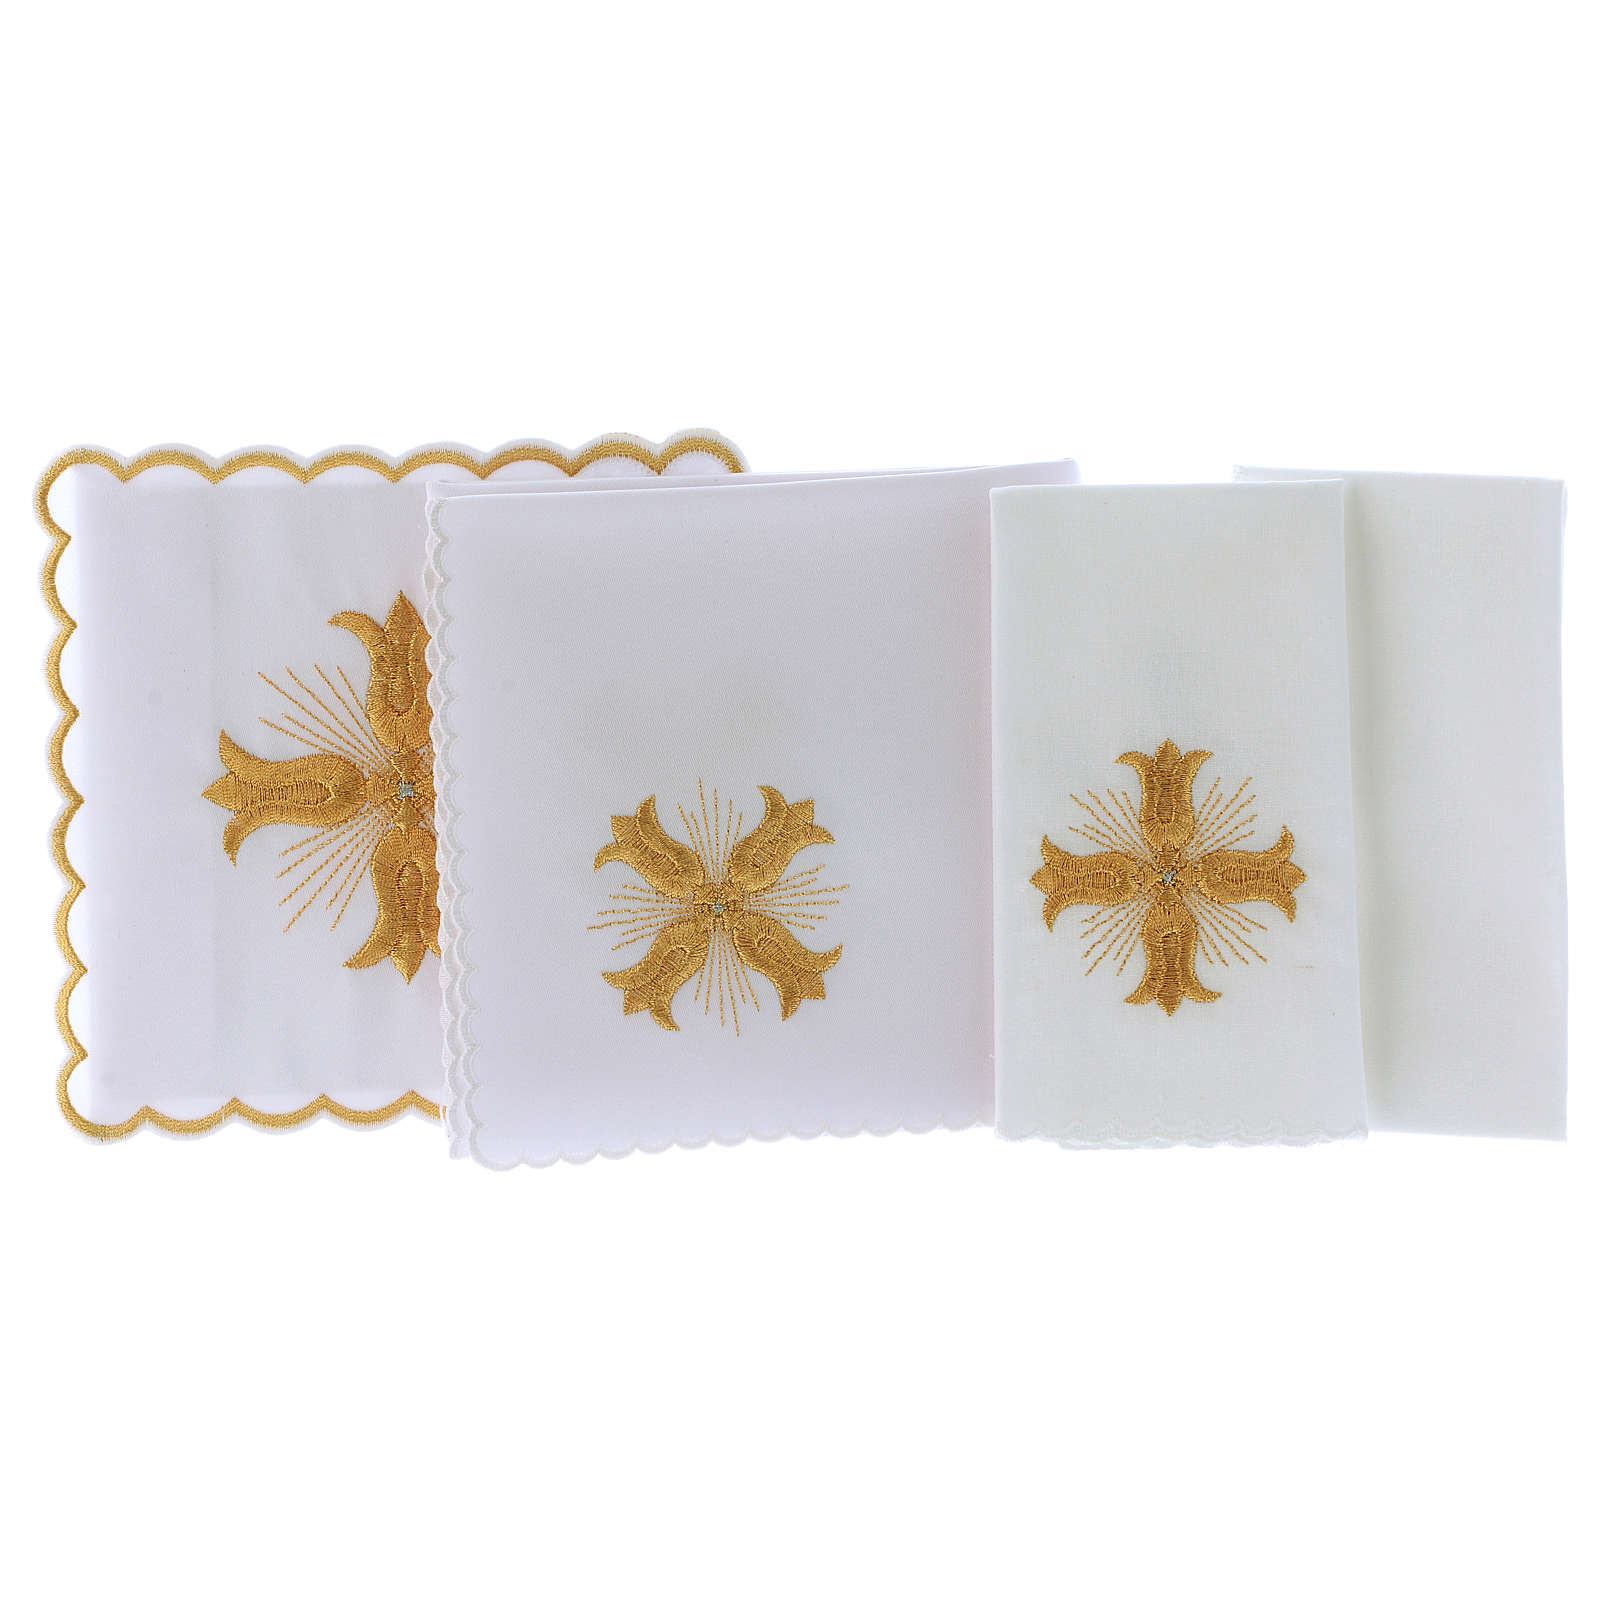 Altar cloths golden cross baroque style with rays, cotton 4